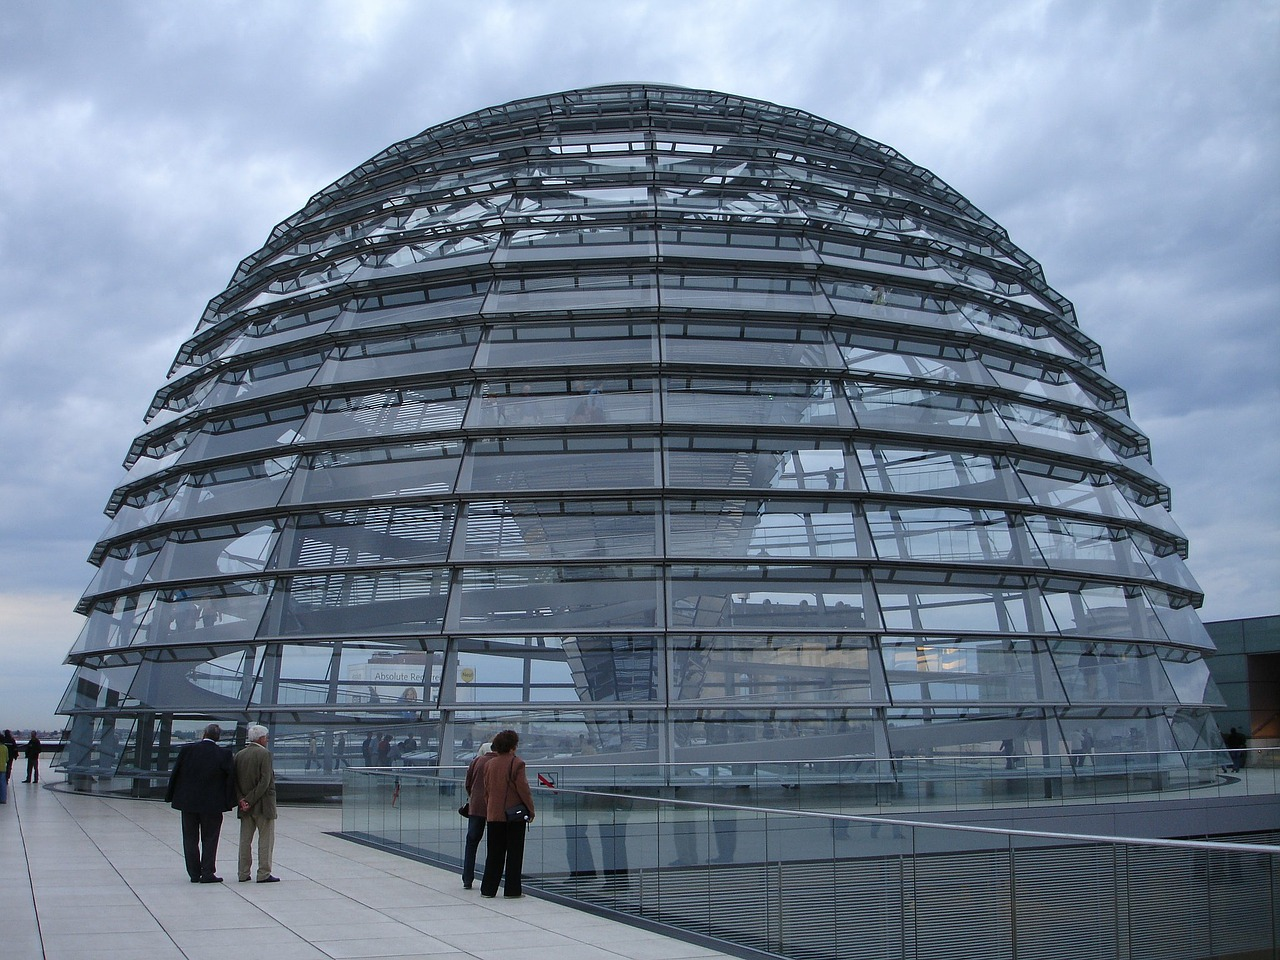 reichstag berlin dome free photo